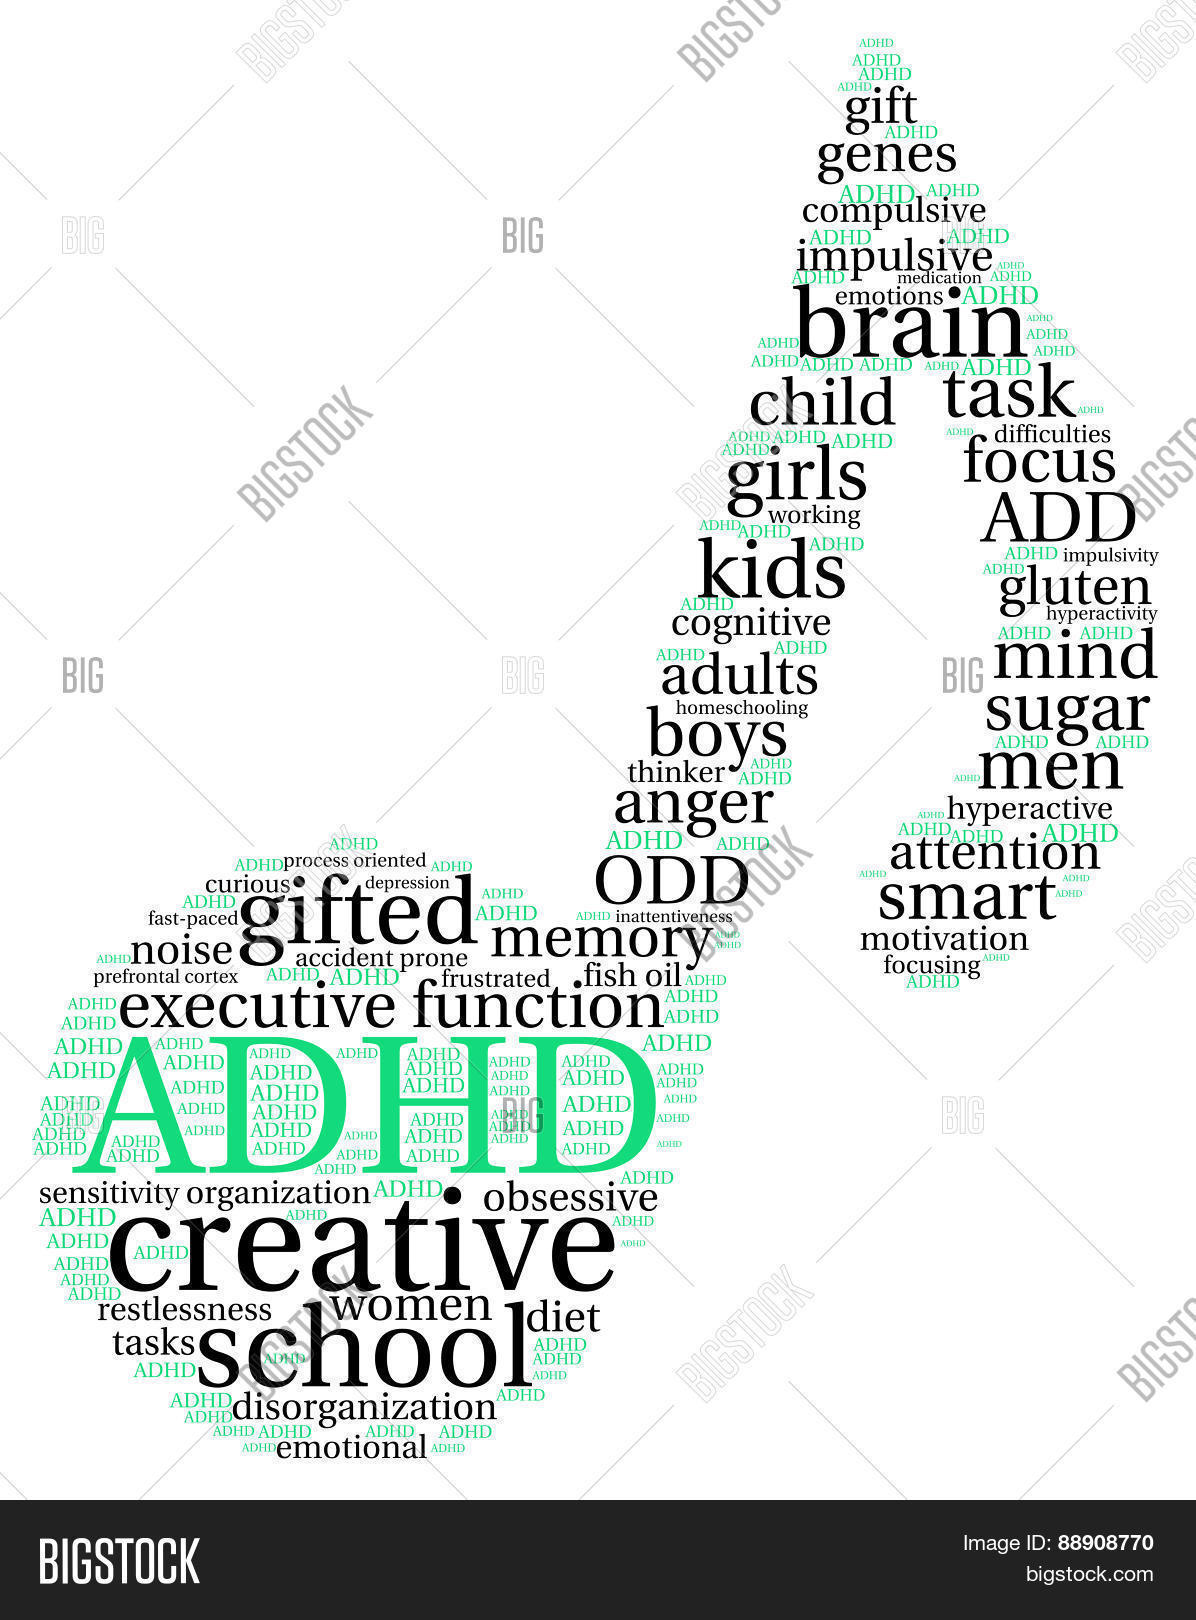 Adhd Musical Note Image Photo Free Trial Bigstock